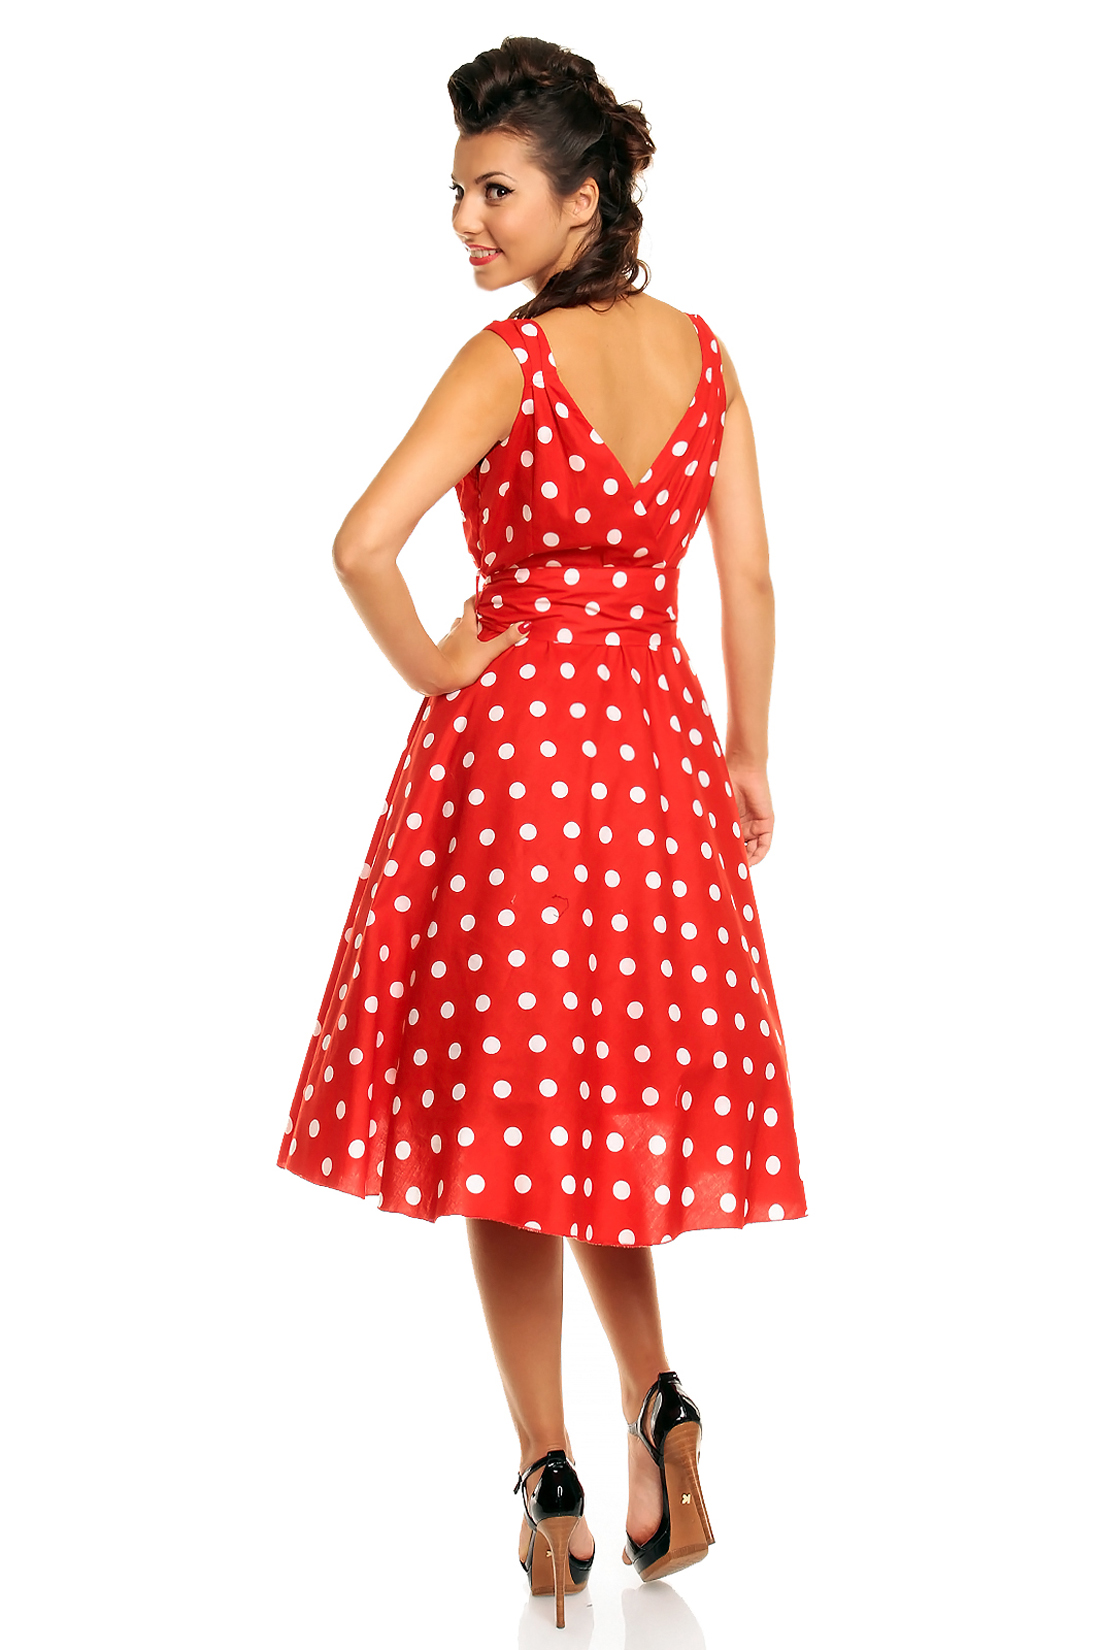 Plus Size Rockabilly Dresses Uk 15